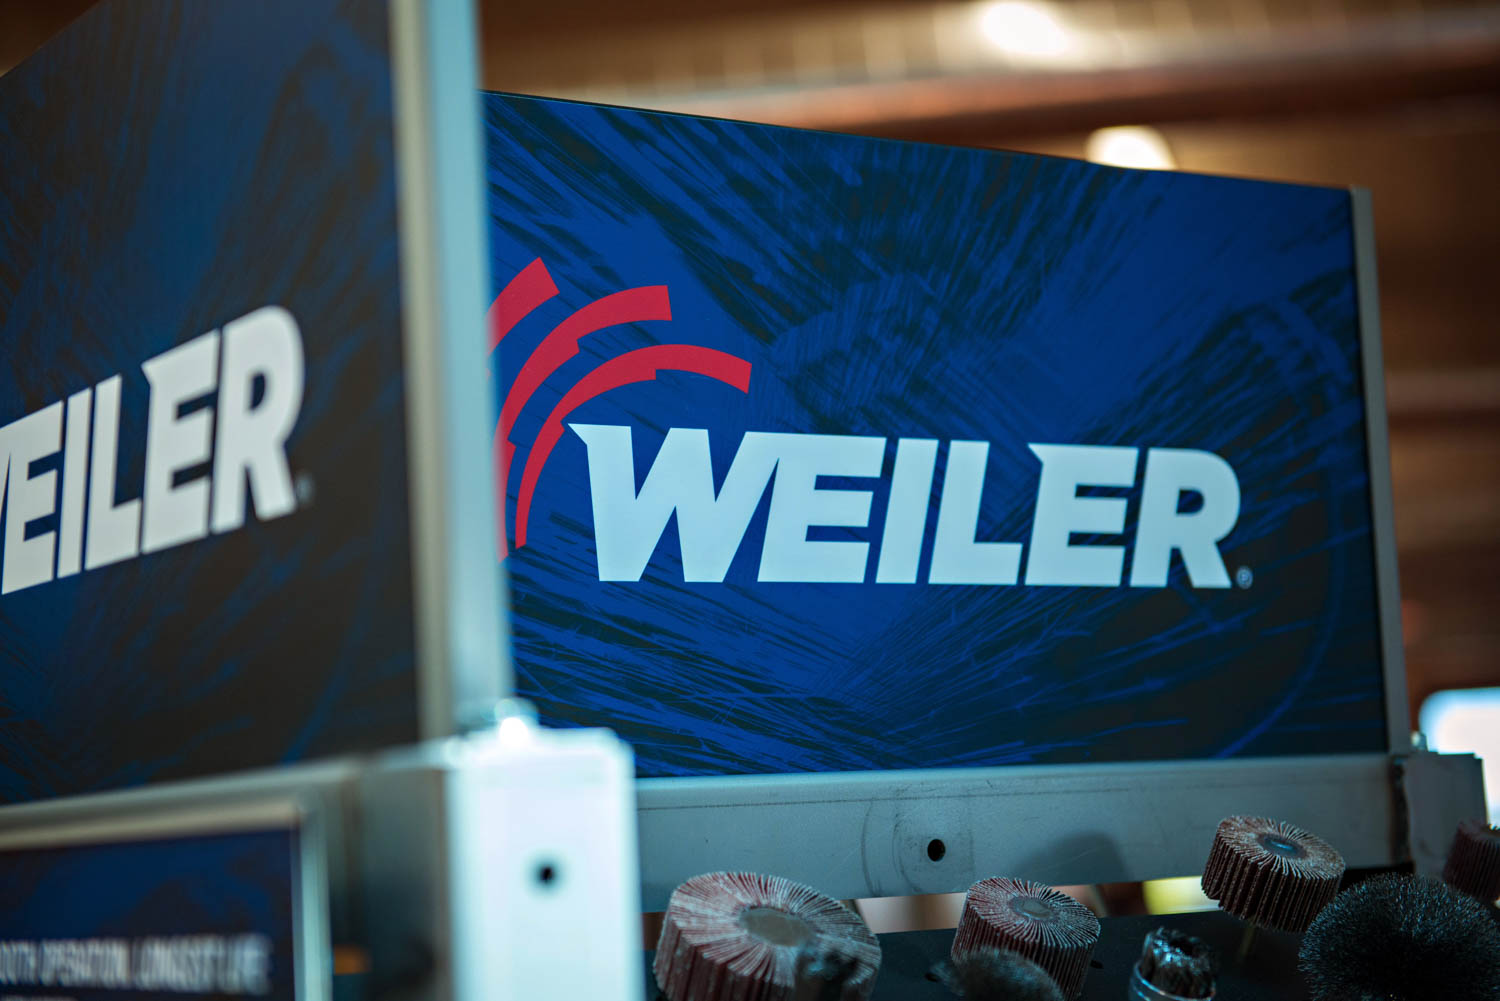 weiler auto product display header detail by metaline